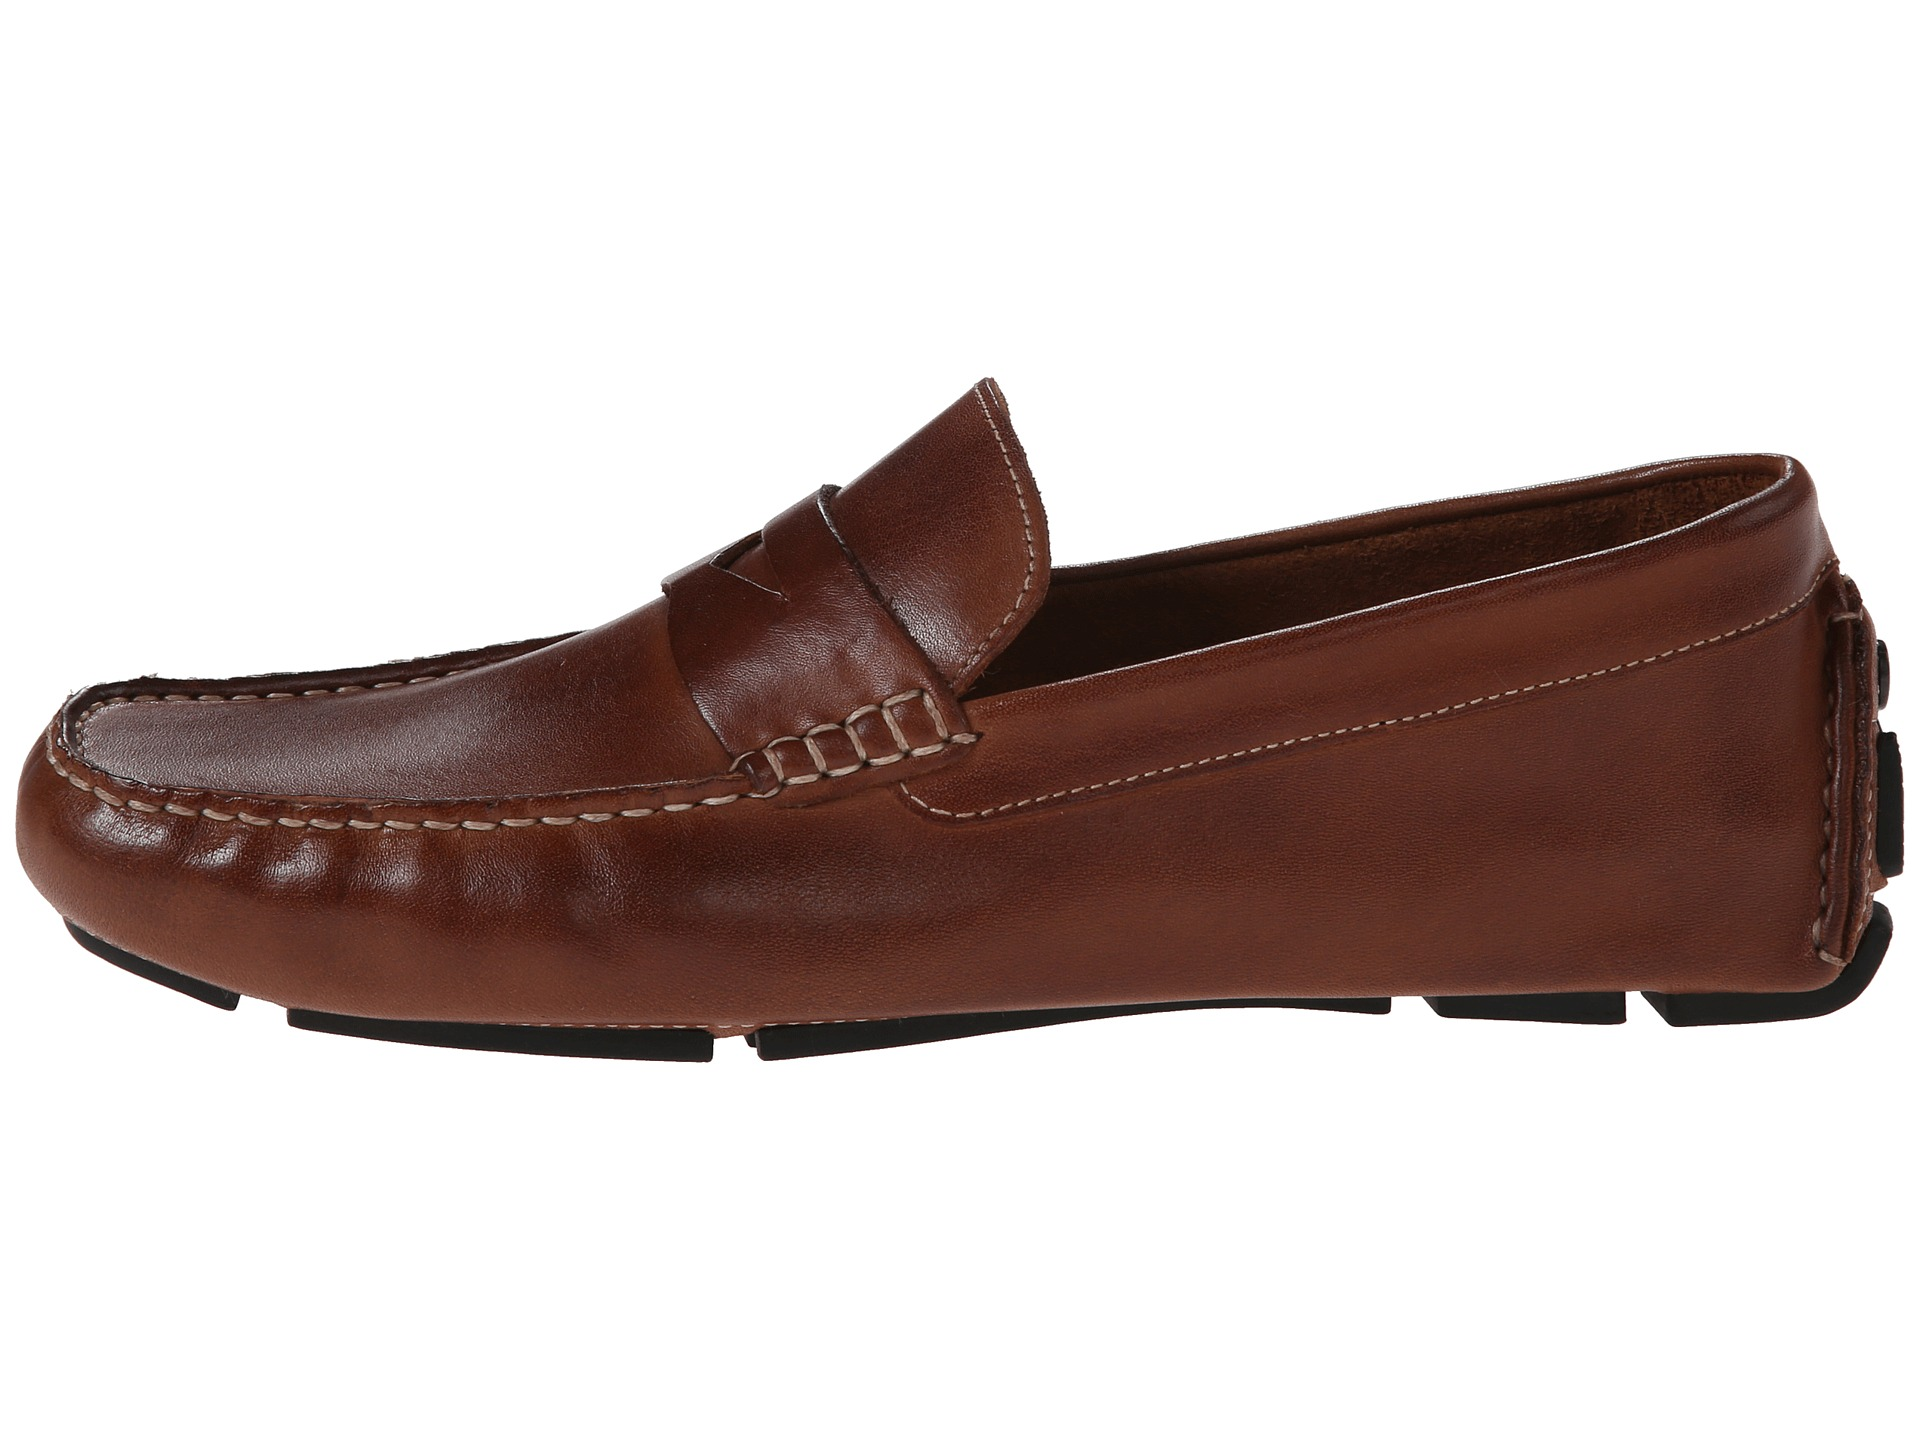 5a000907b9c Cole Haan Men s Howland PennySaddle Tan11 M US - Bossman Shoes · Cole Haan  Howland Penny at Zappos.com